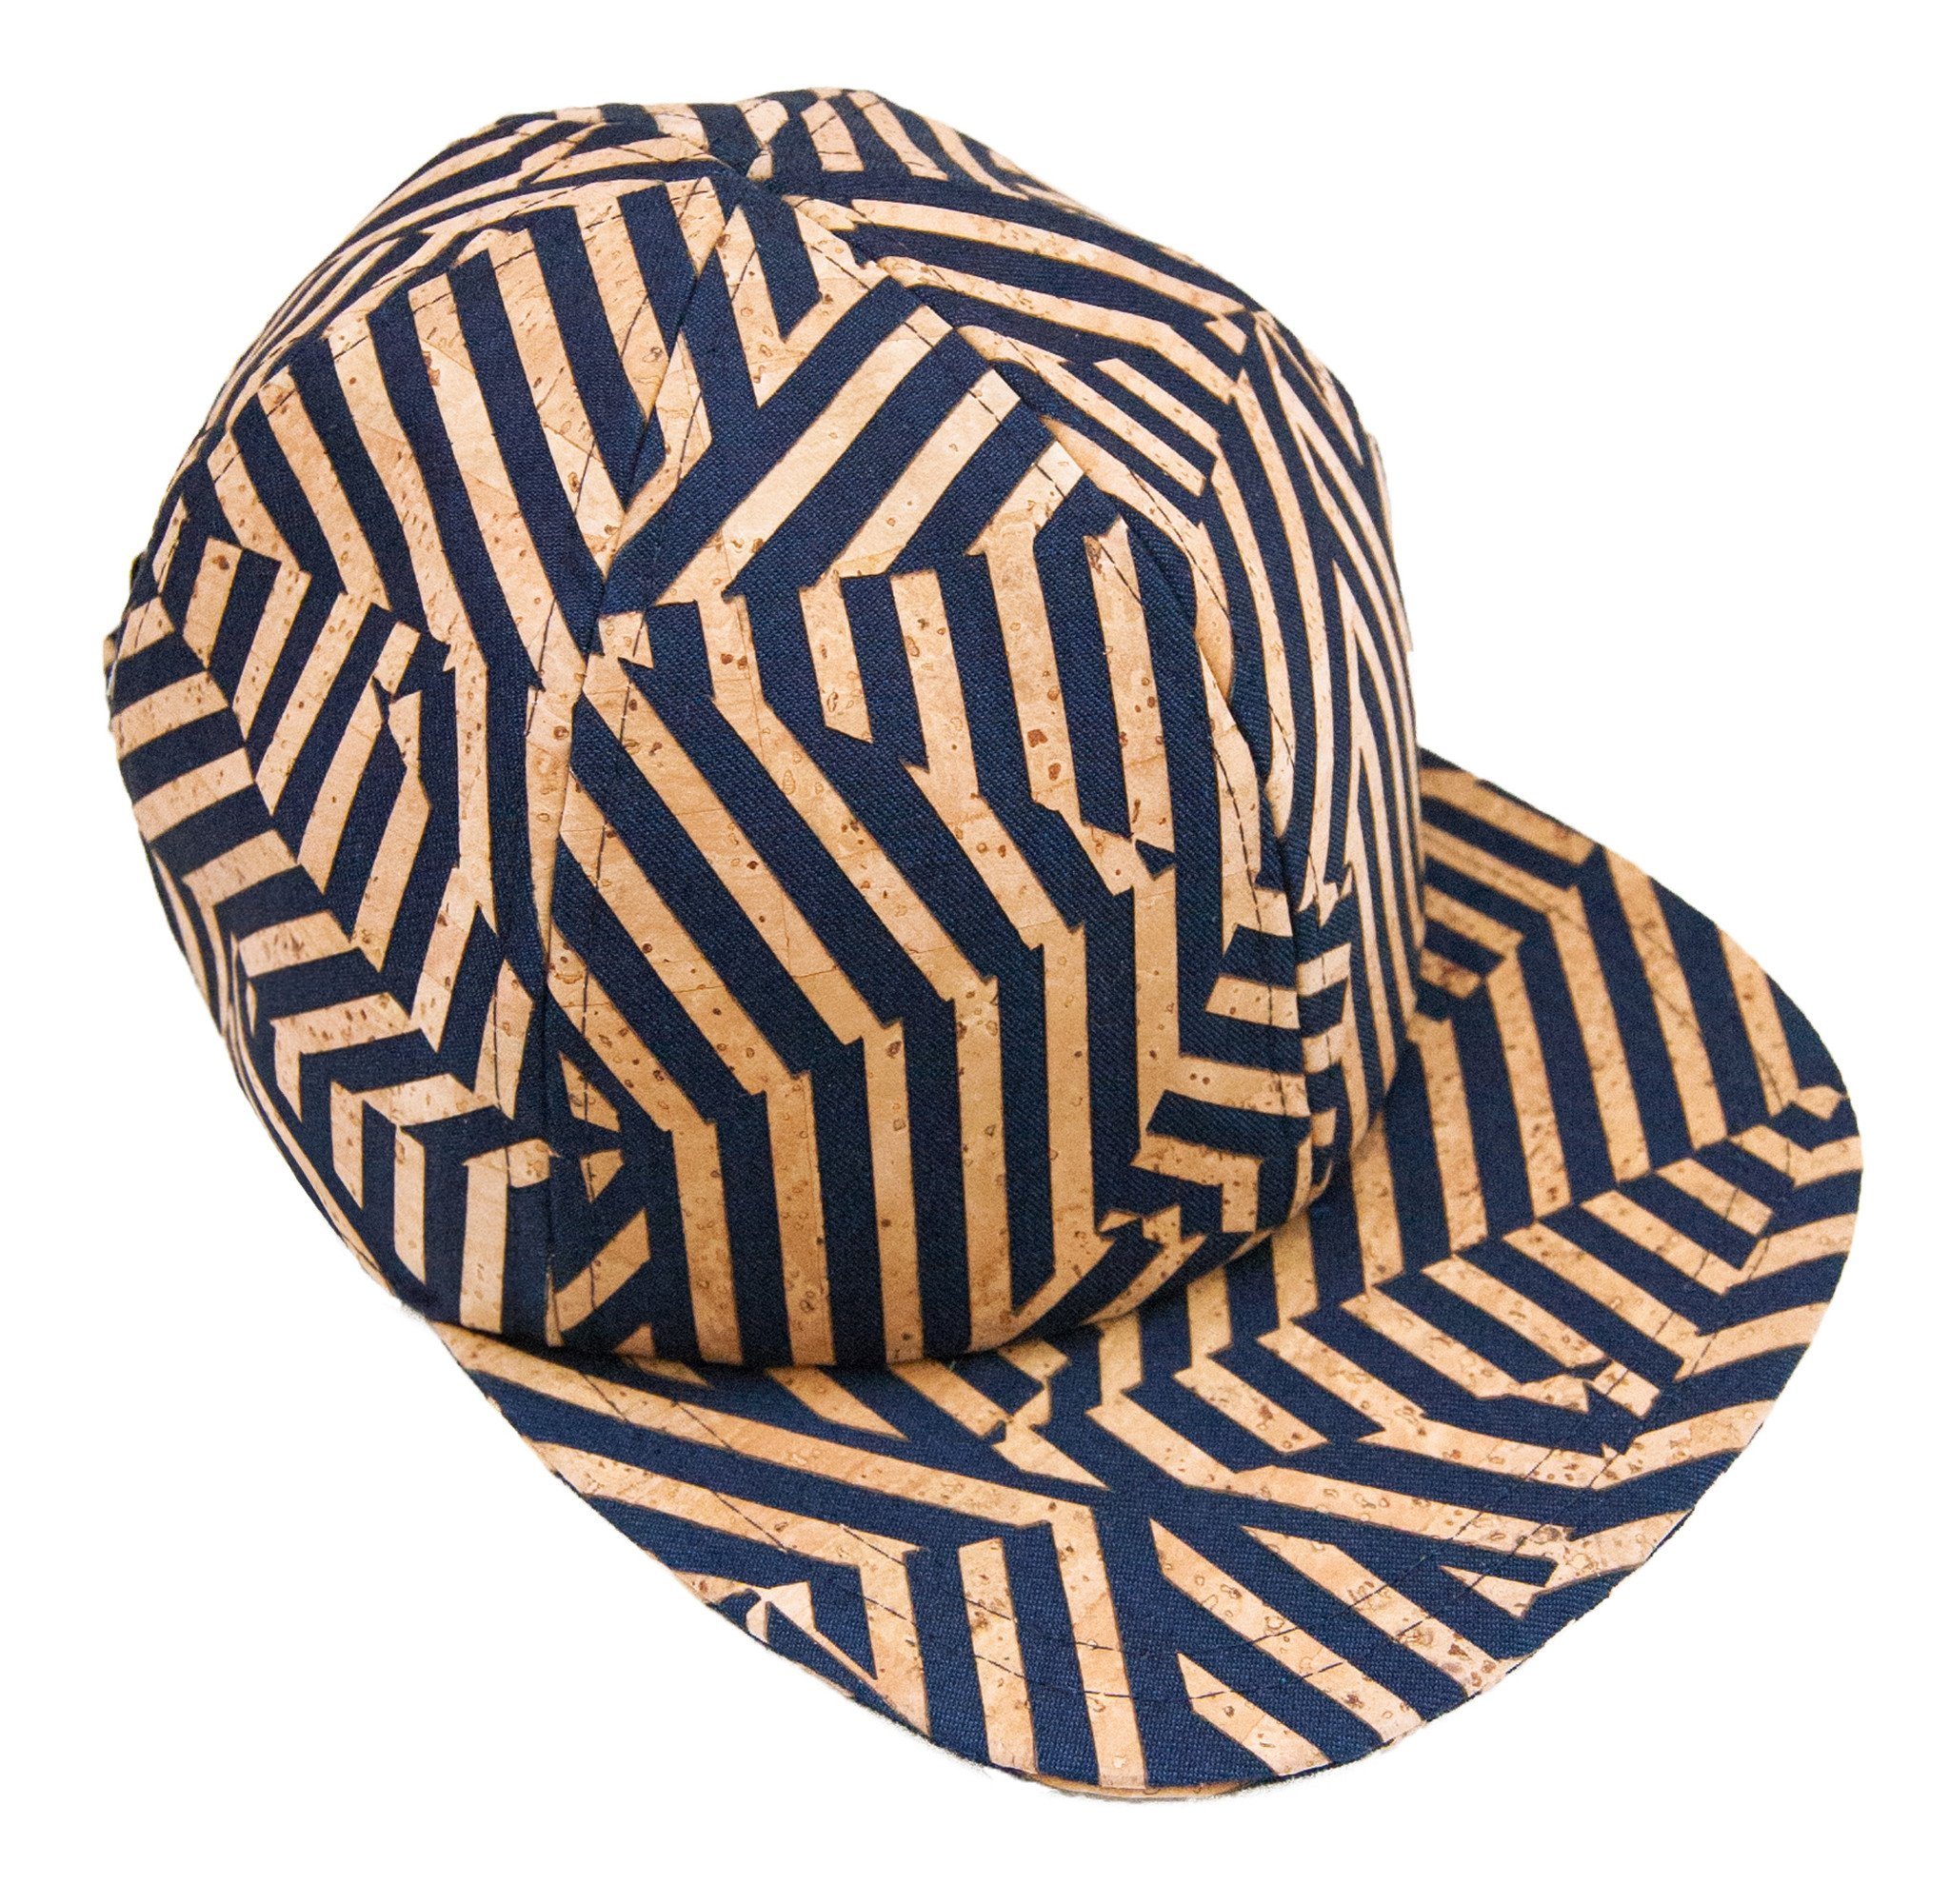 Zebra Cap Raw limited edition by BASUS